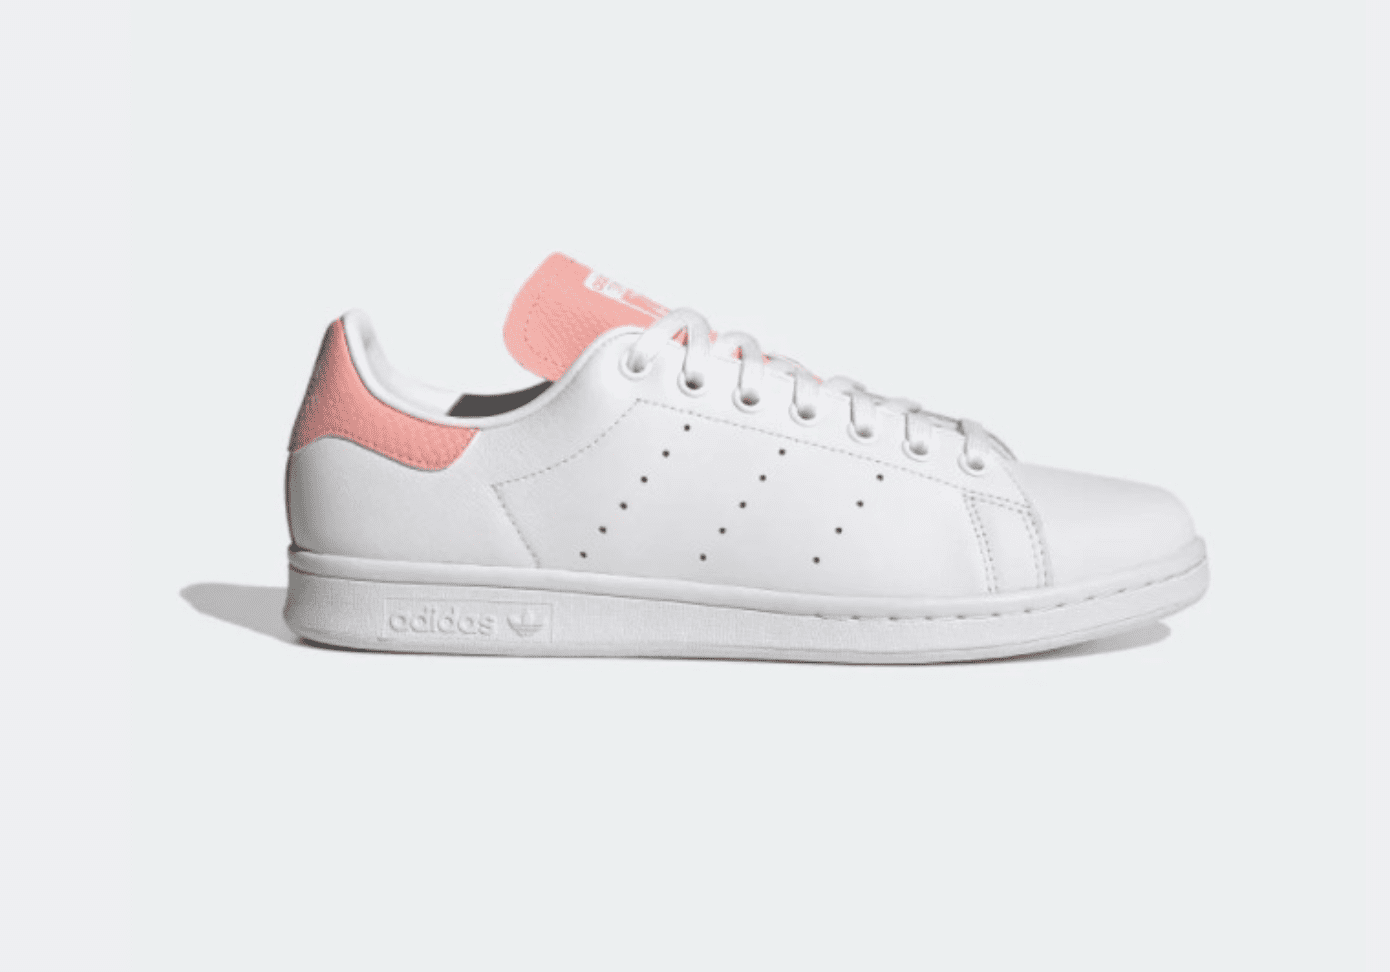 Adidas: 50% off select Stan Smith shoes.